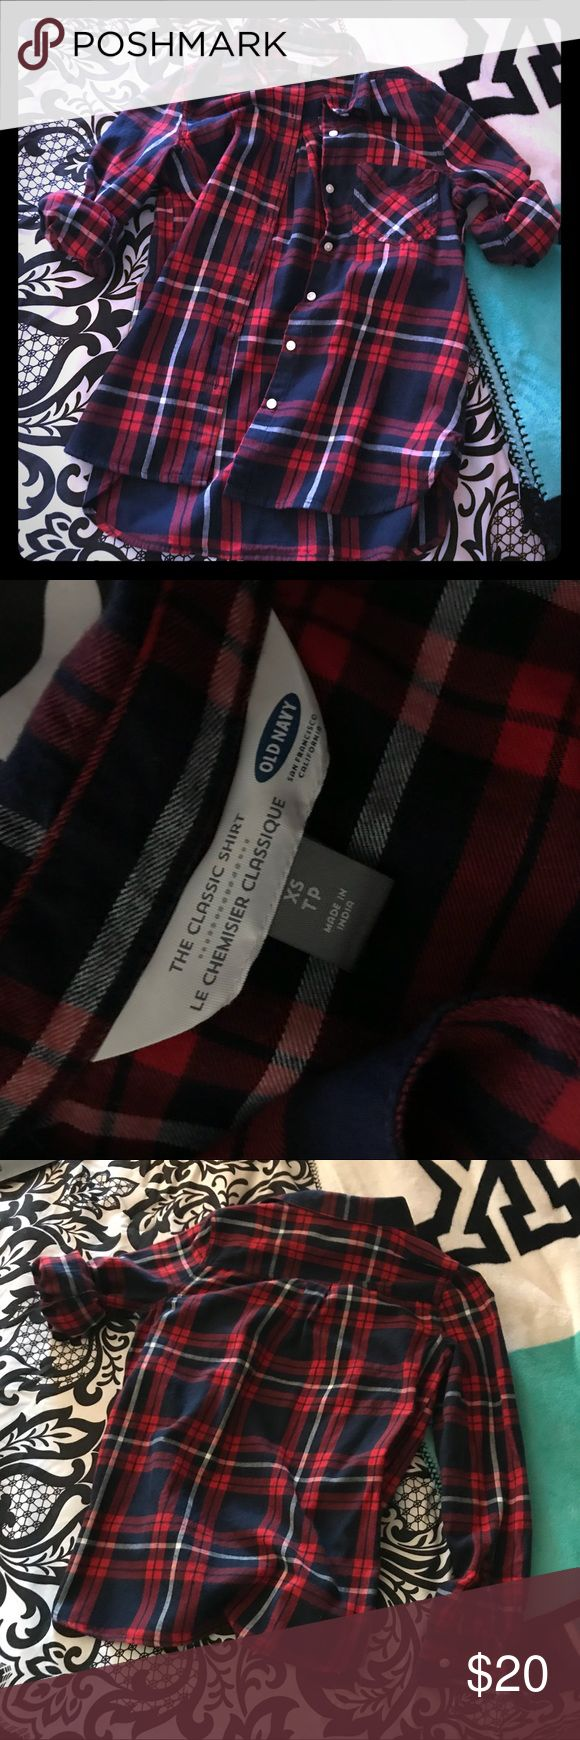 ❤️Old Navy Flannel Button Down❤️ Super soft, excellent condition - no flaws, stains, snags or holes; navy, red and white flannel! Classic fit which means it's a looser fit, not tight. Says XS but could definitely go up to a medium. Looks good with rolled sleeves or worn long! Old Navy Tops Button Down Shirts